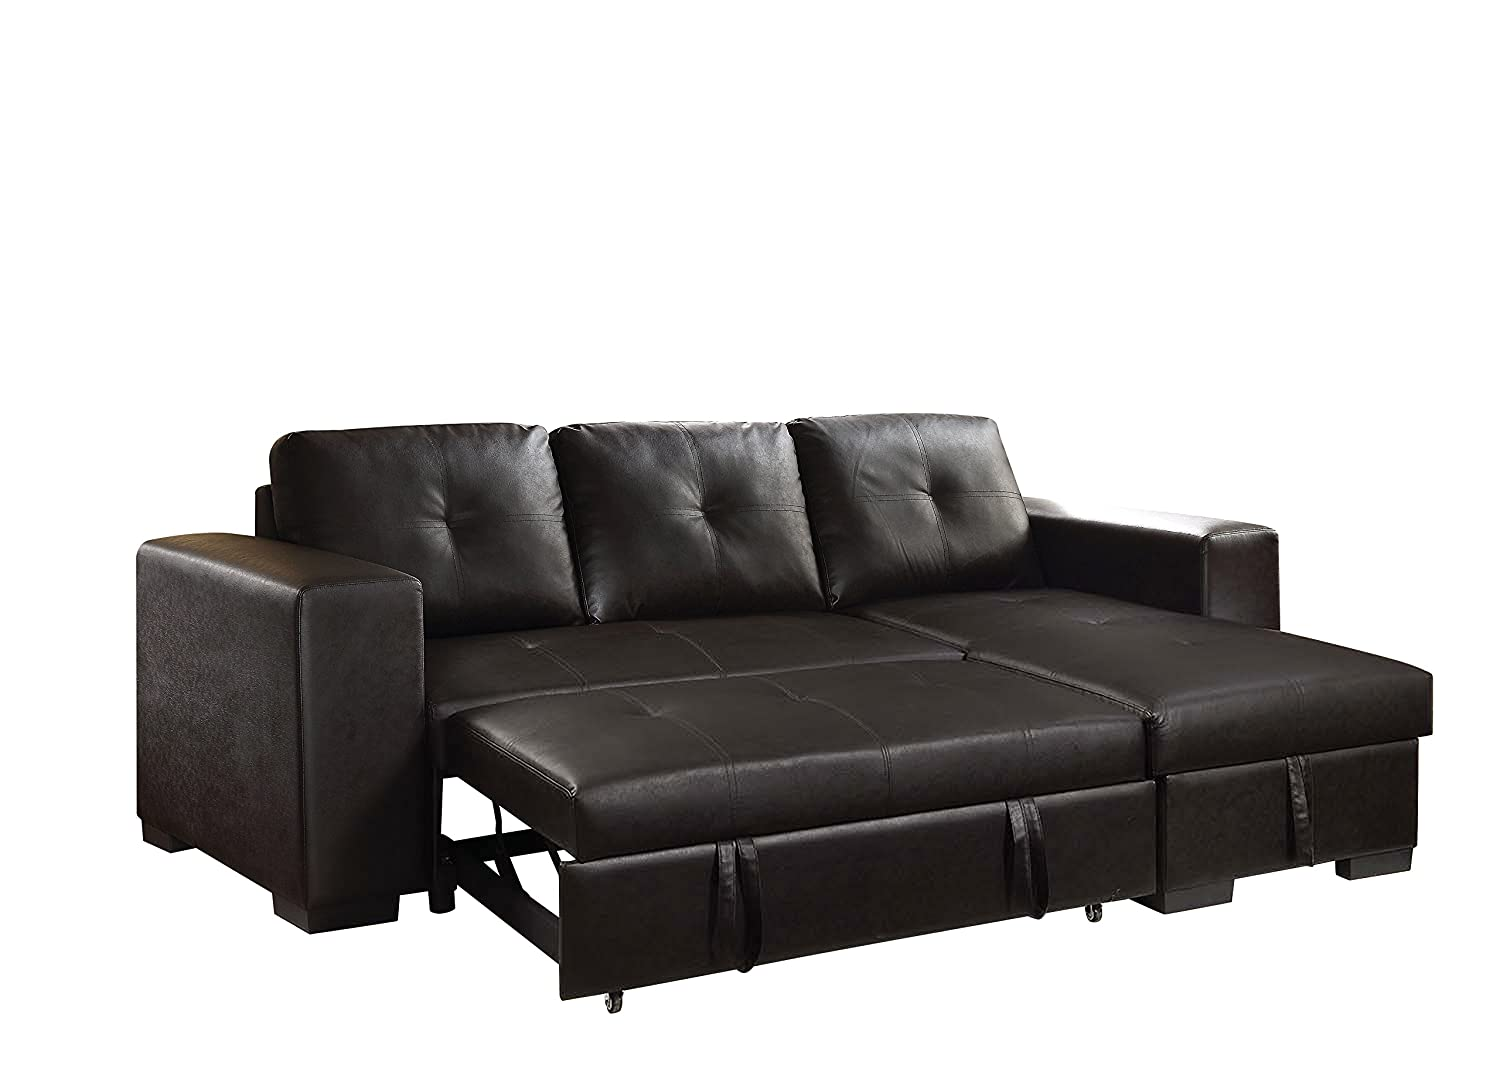 Amazon.com: ACME Lloyd Black Faux Leather Sectional Sofa with ...